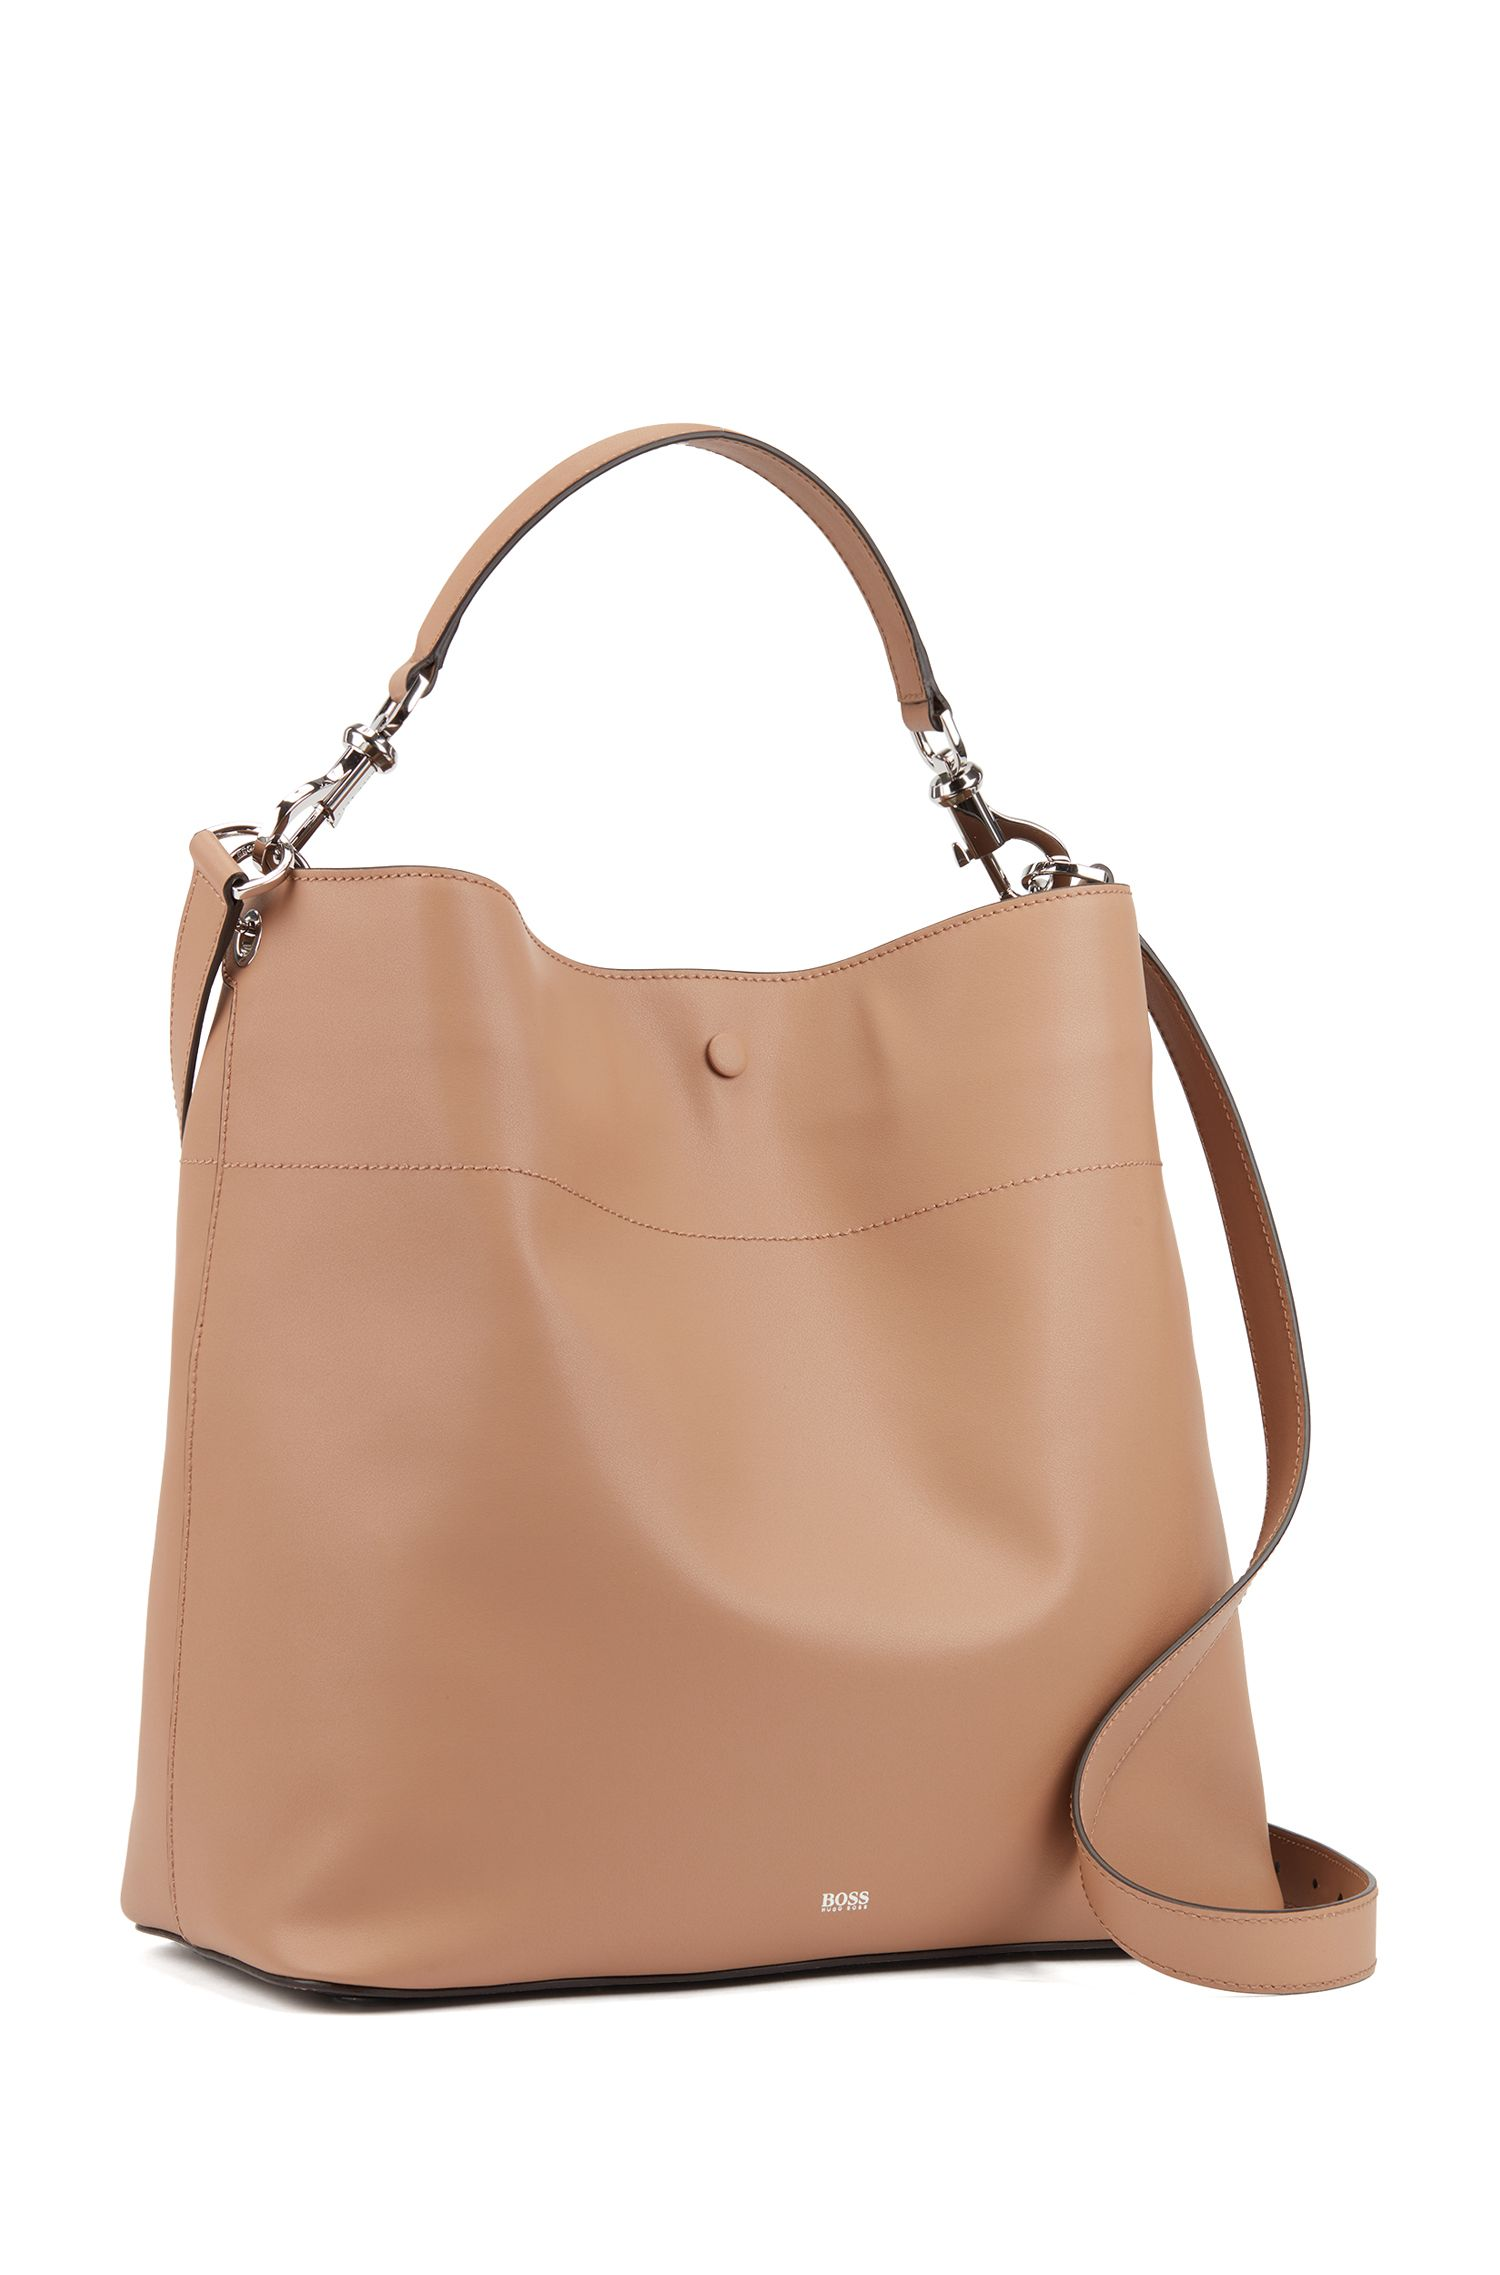 Italian-leather hobo bag with snap-hook hardware, Beige